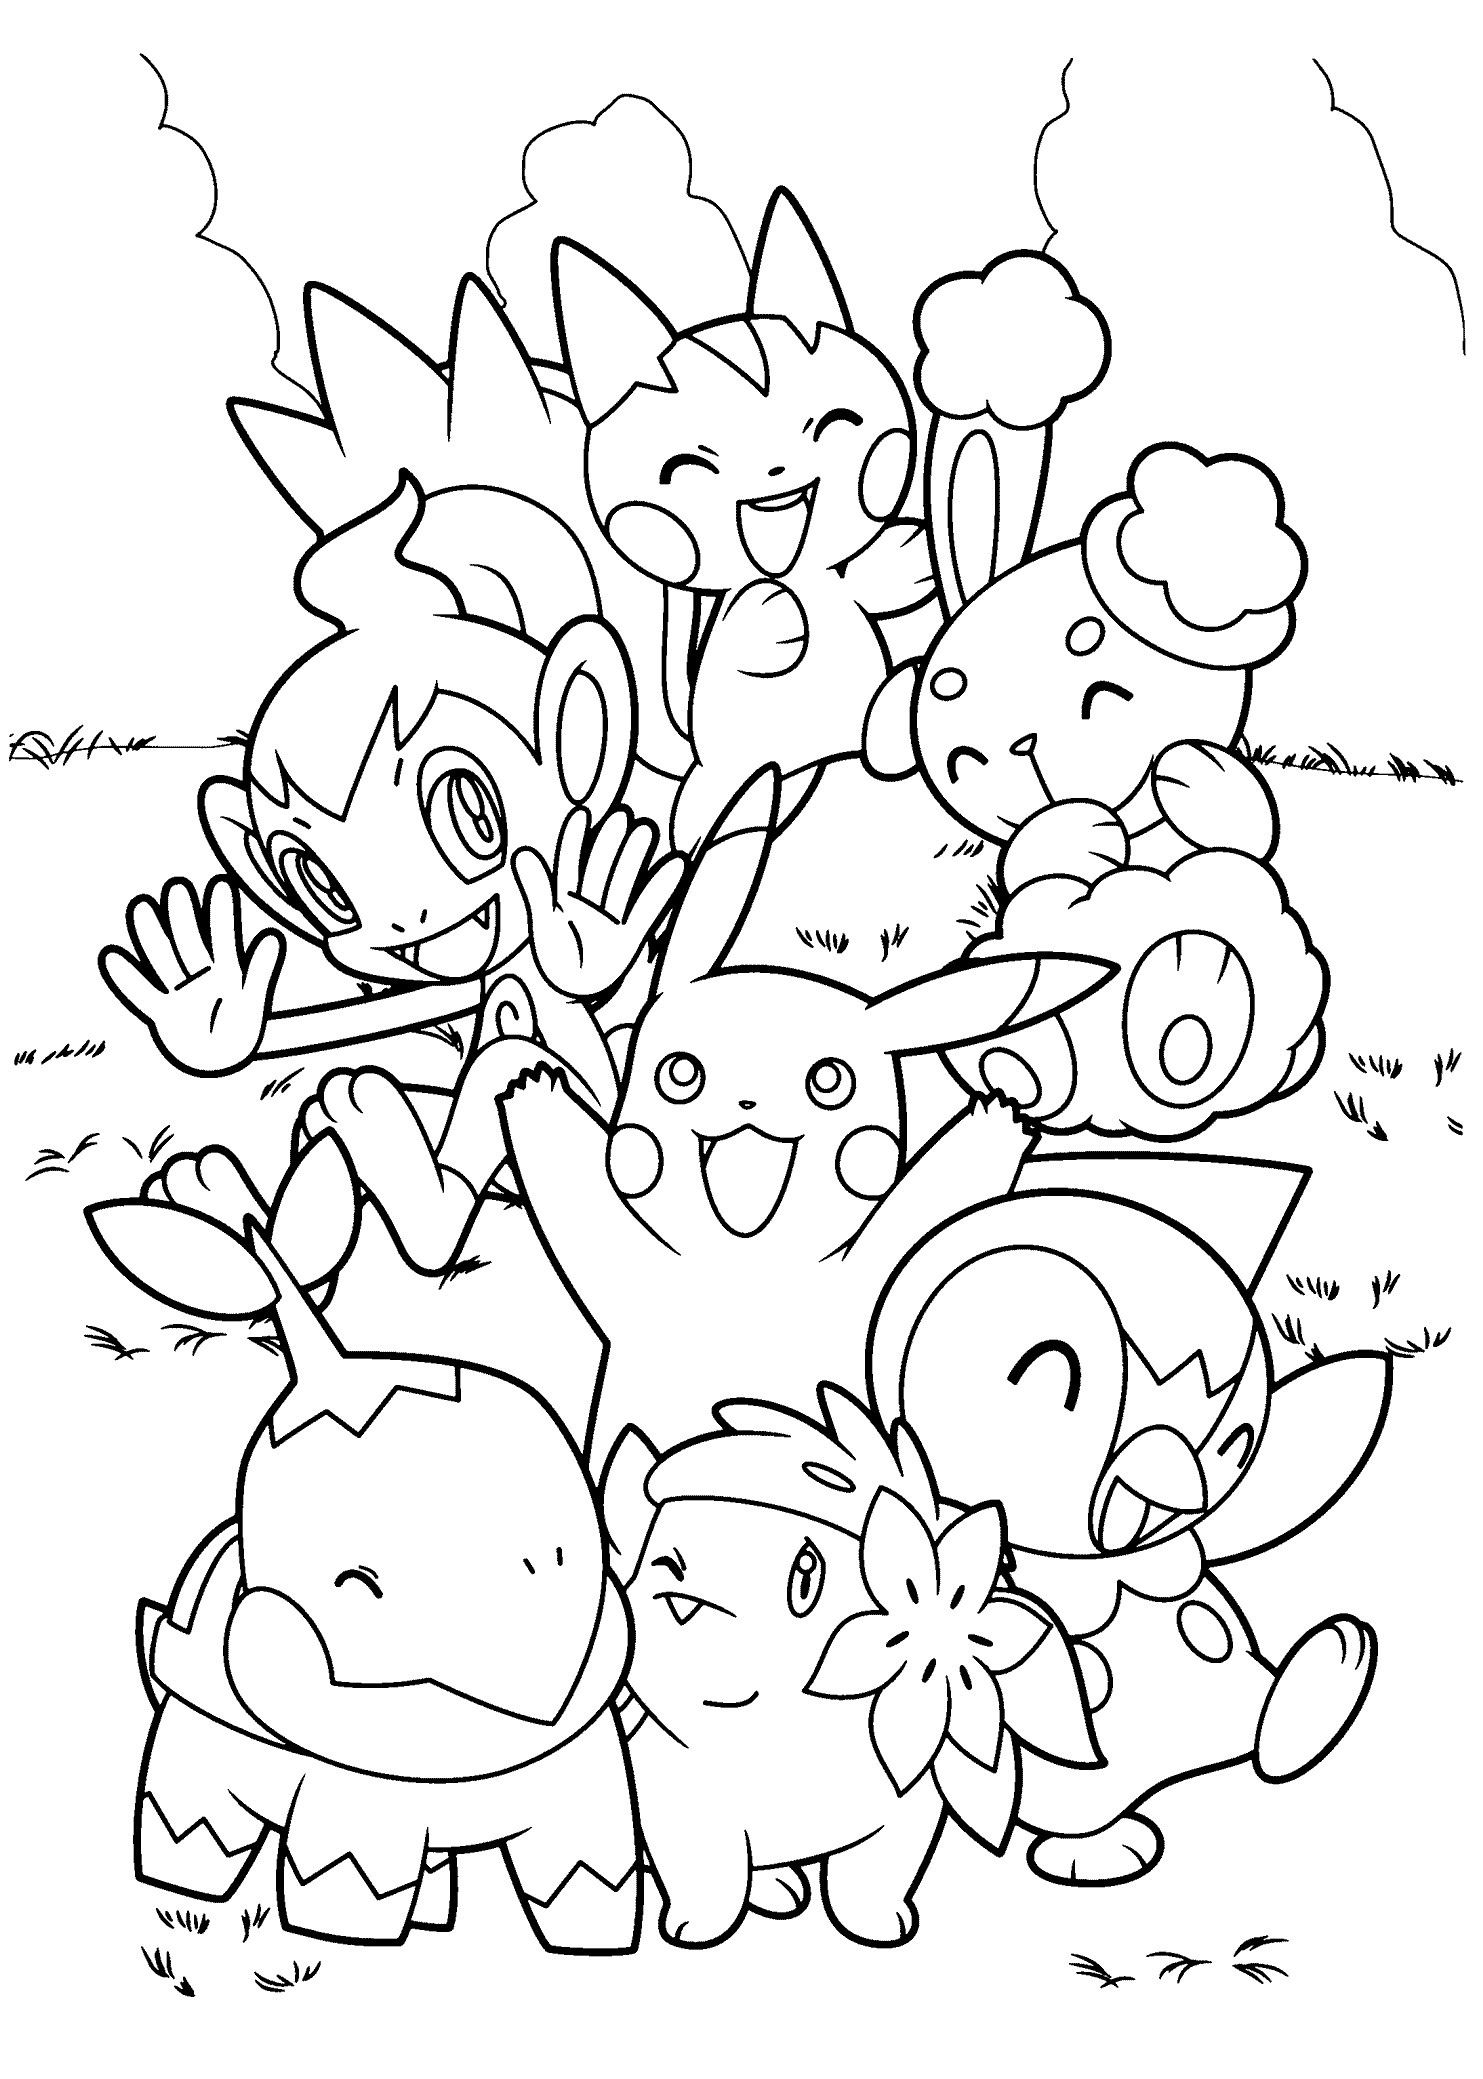 Pokemon Coloring Characters Through The Thousand Photos On The Internet With Regards To Pokem Pokemon Coloring Sheets Pokemon Coloring Pages Pokemon Coloring